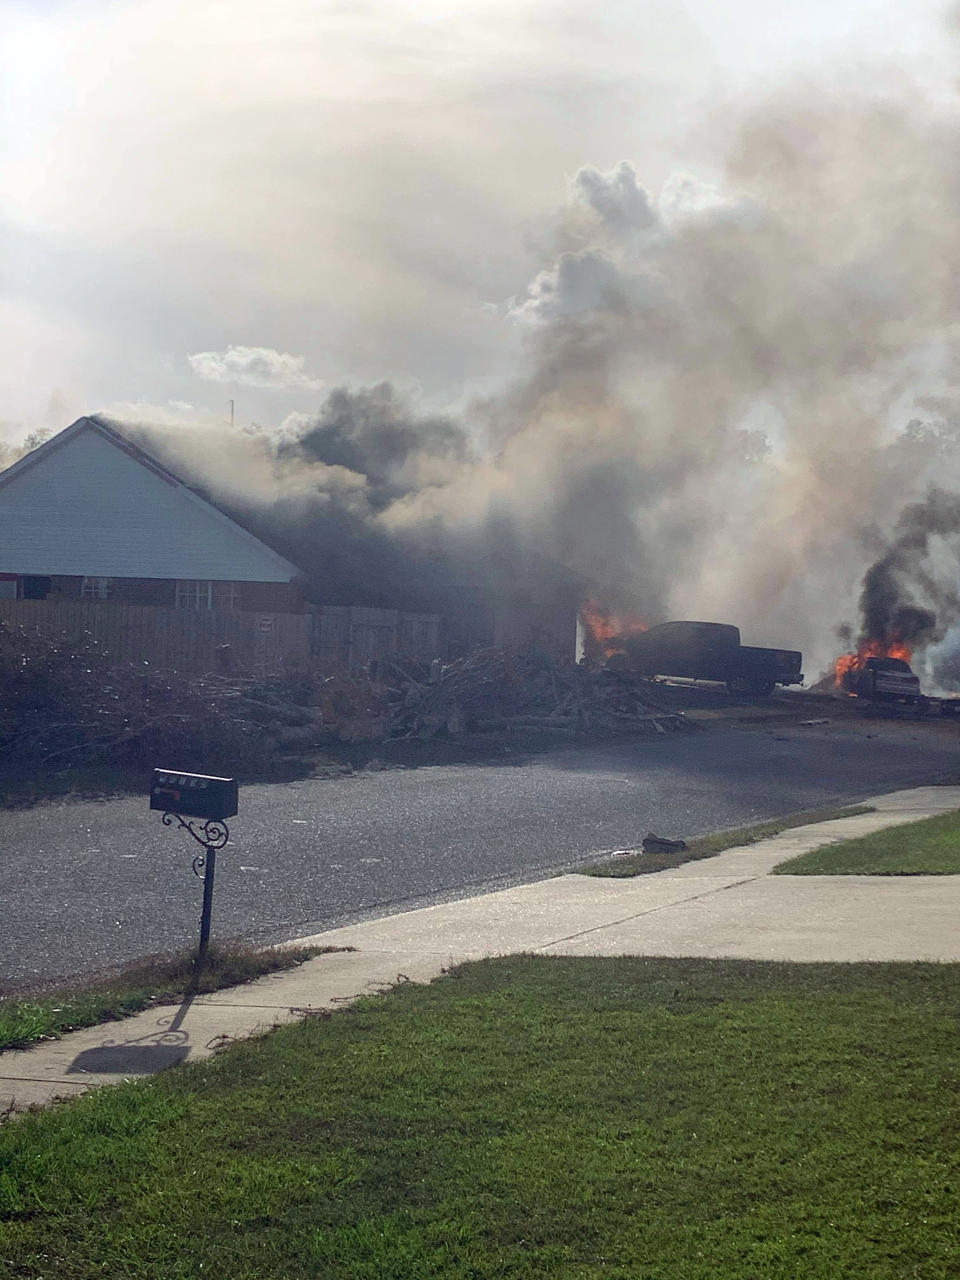 Cars and a house seen in flames as smoke rises in a residential neighbourhood after a US Navy training plane crashed in Alabama.